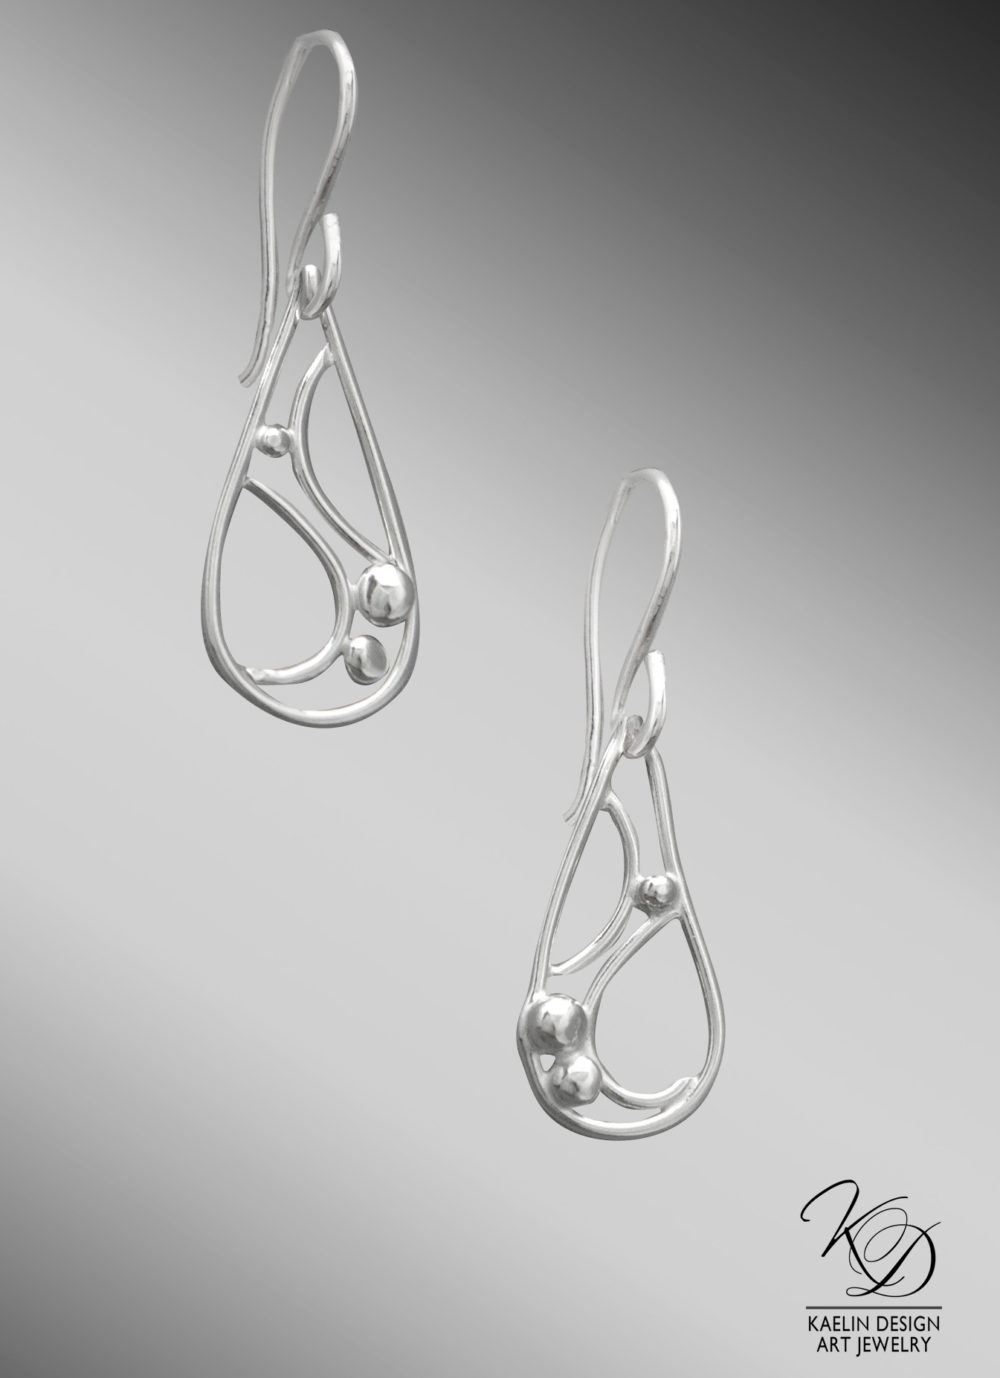 Rippling Currents Ocean Inspired Silver Earrings by Kaelin Design